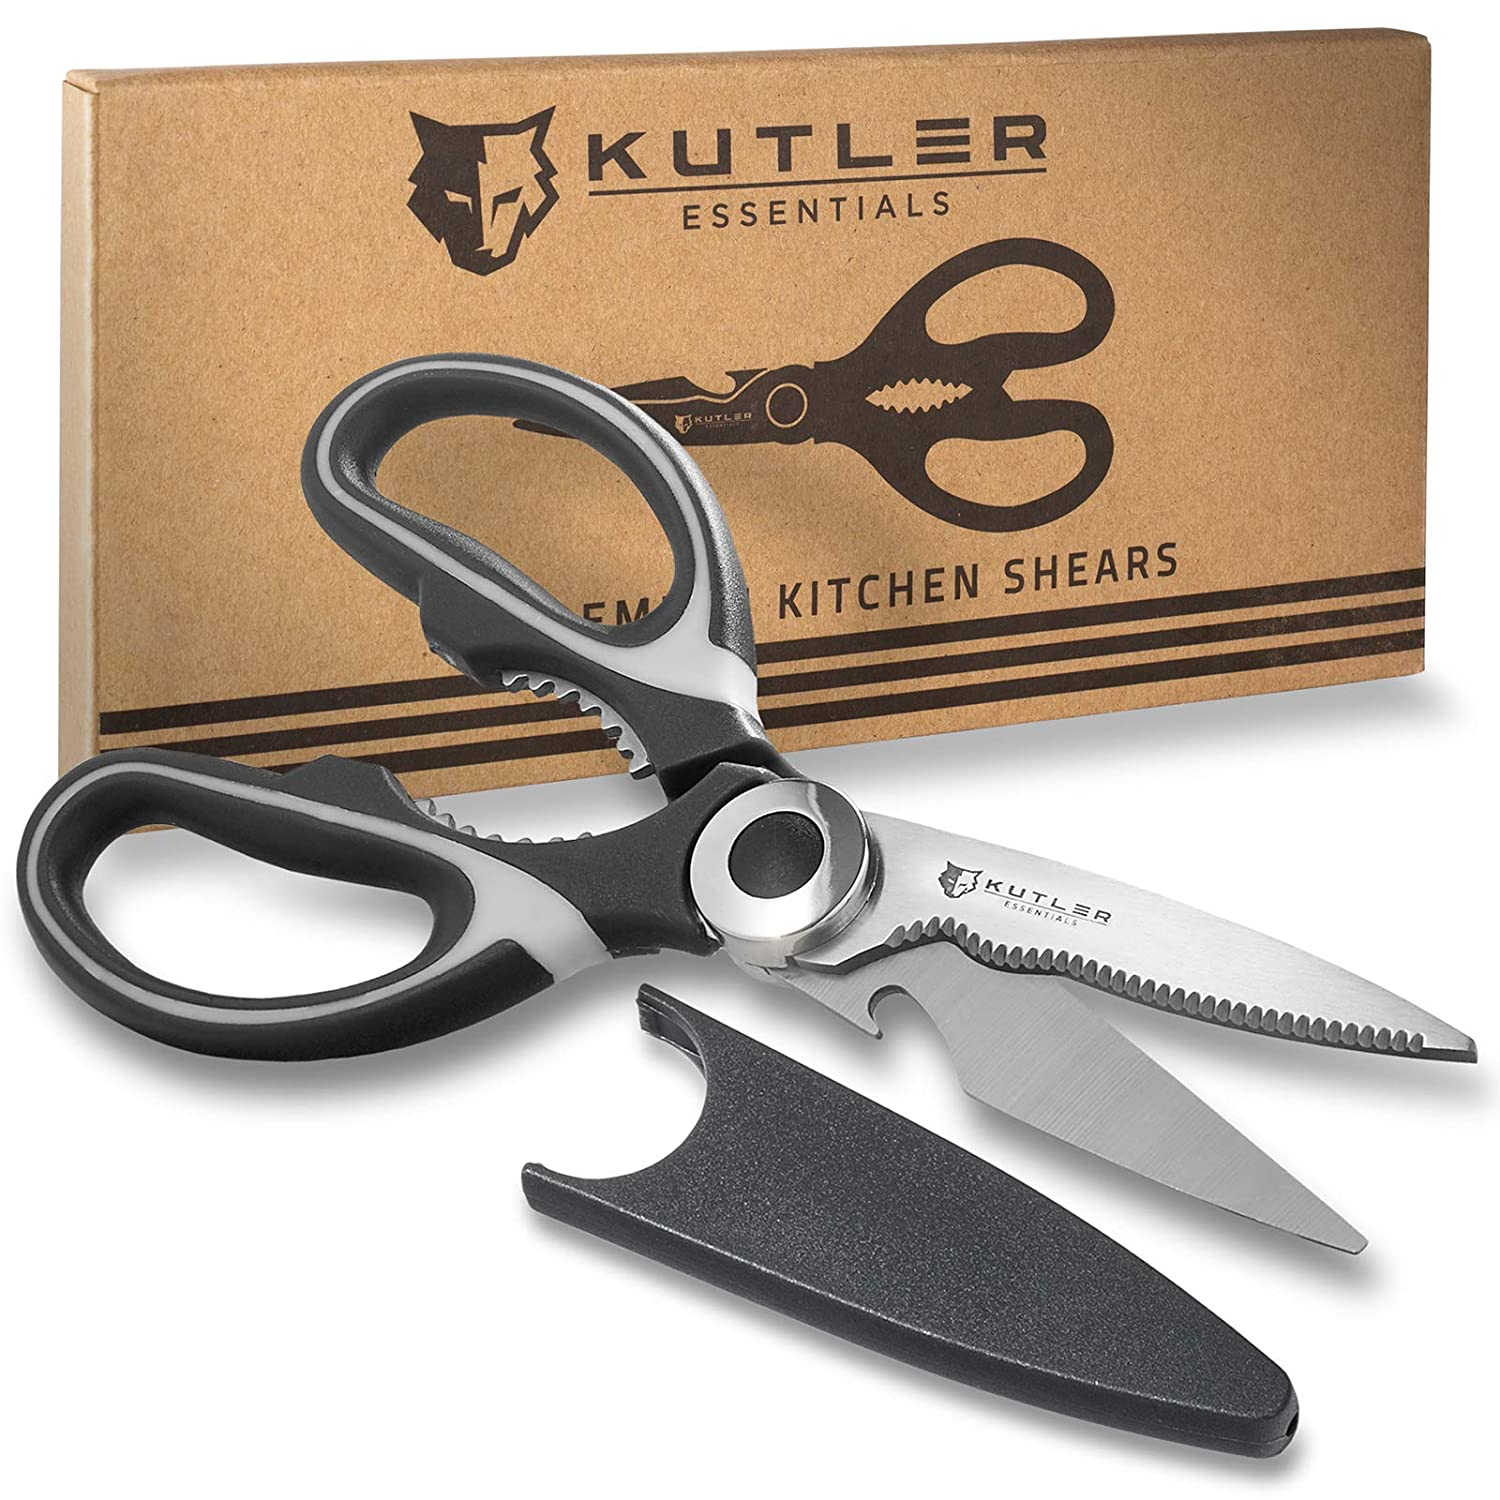 """KUTLER 8"""" Premium Kitchen Shears - Ultra Sharp Stainless Steel Blades - Multipurpose Scissors for Cutting Herbs, Meats, Poultry, Vegetables & More"""